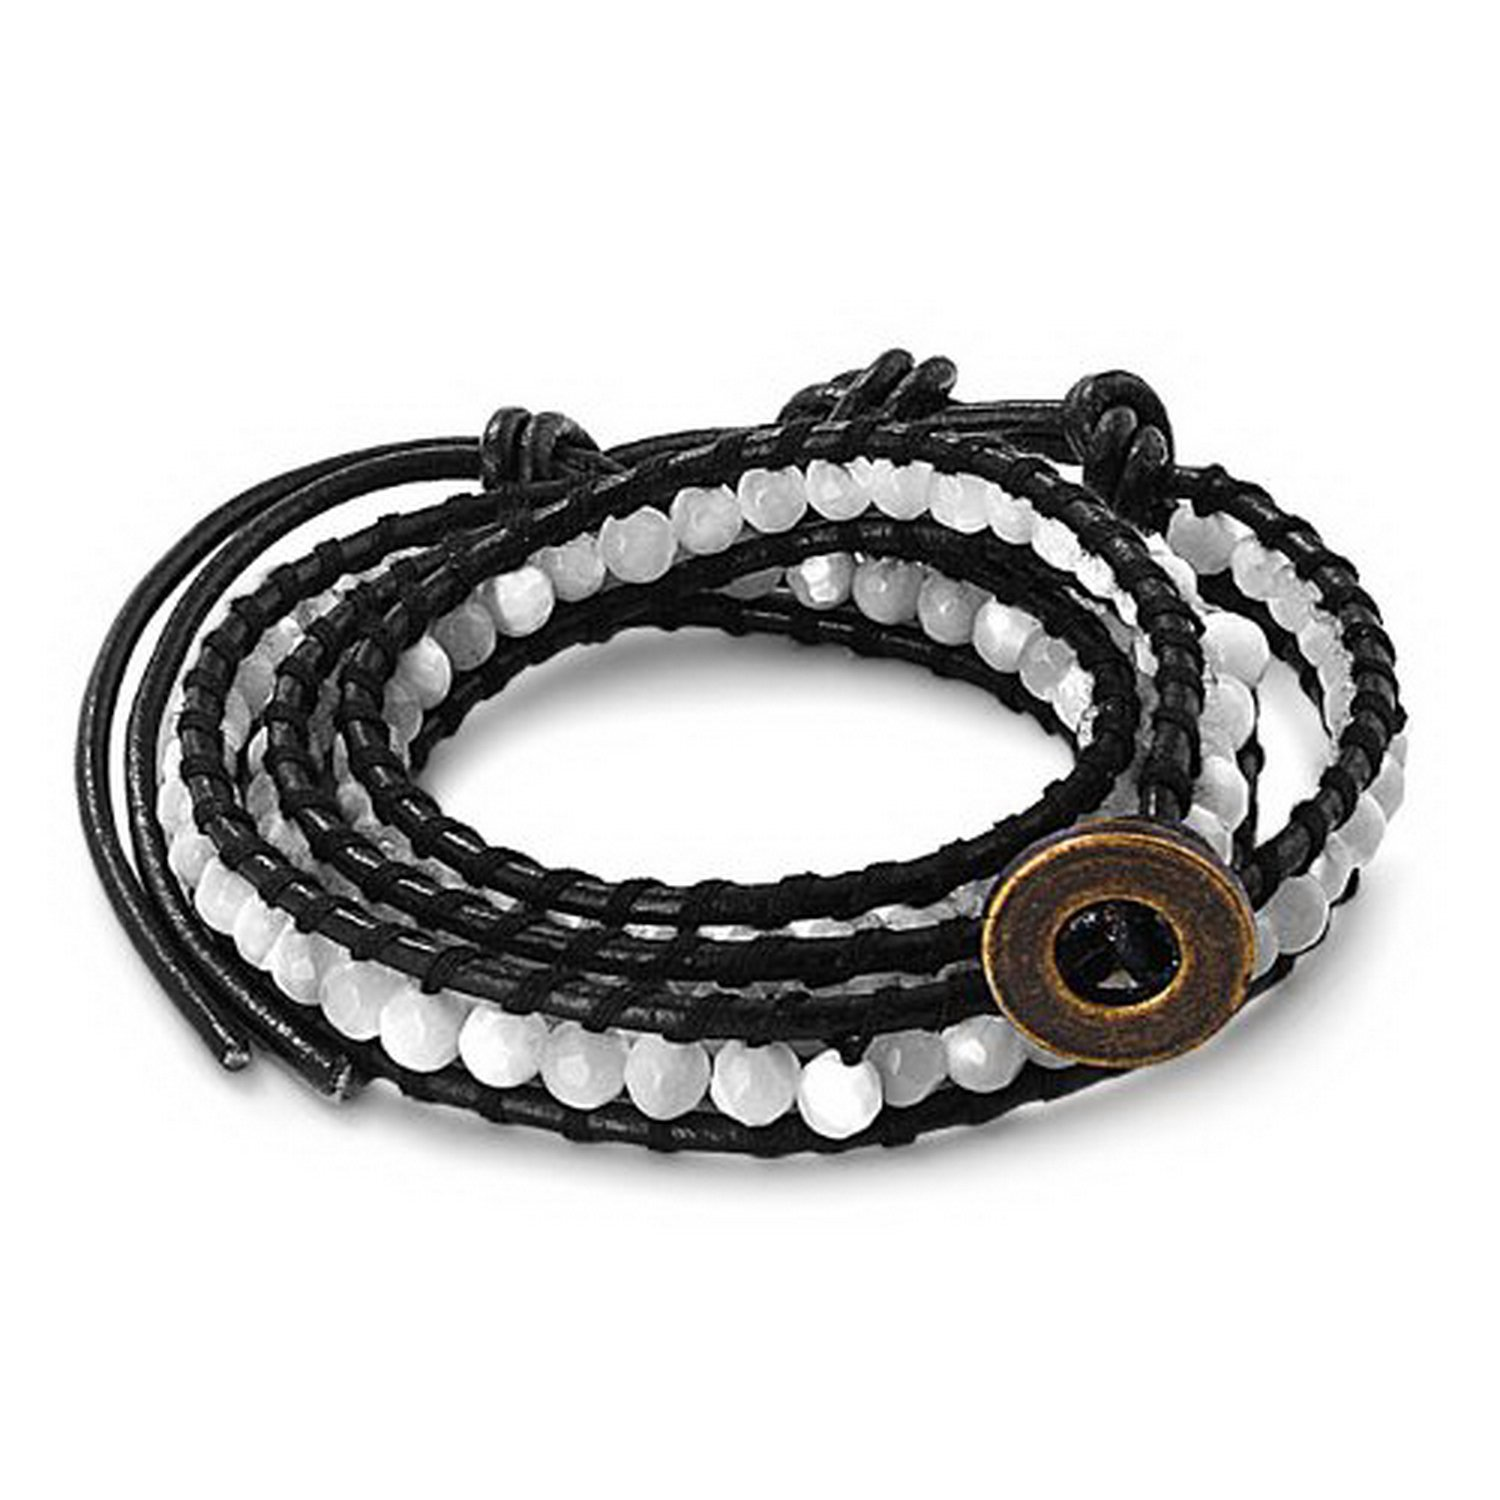 JewelryVolt FB-5830 Genuine Leather Black Wrap Bracelet Faceted Mother of Pearl Shell